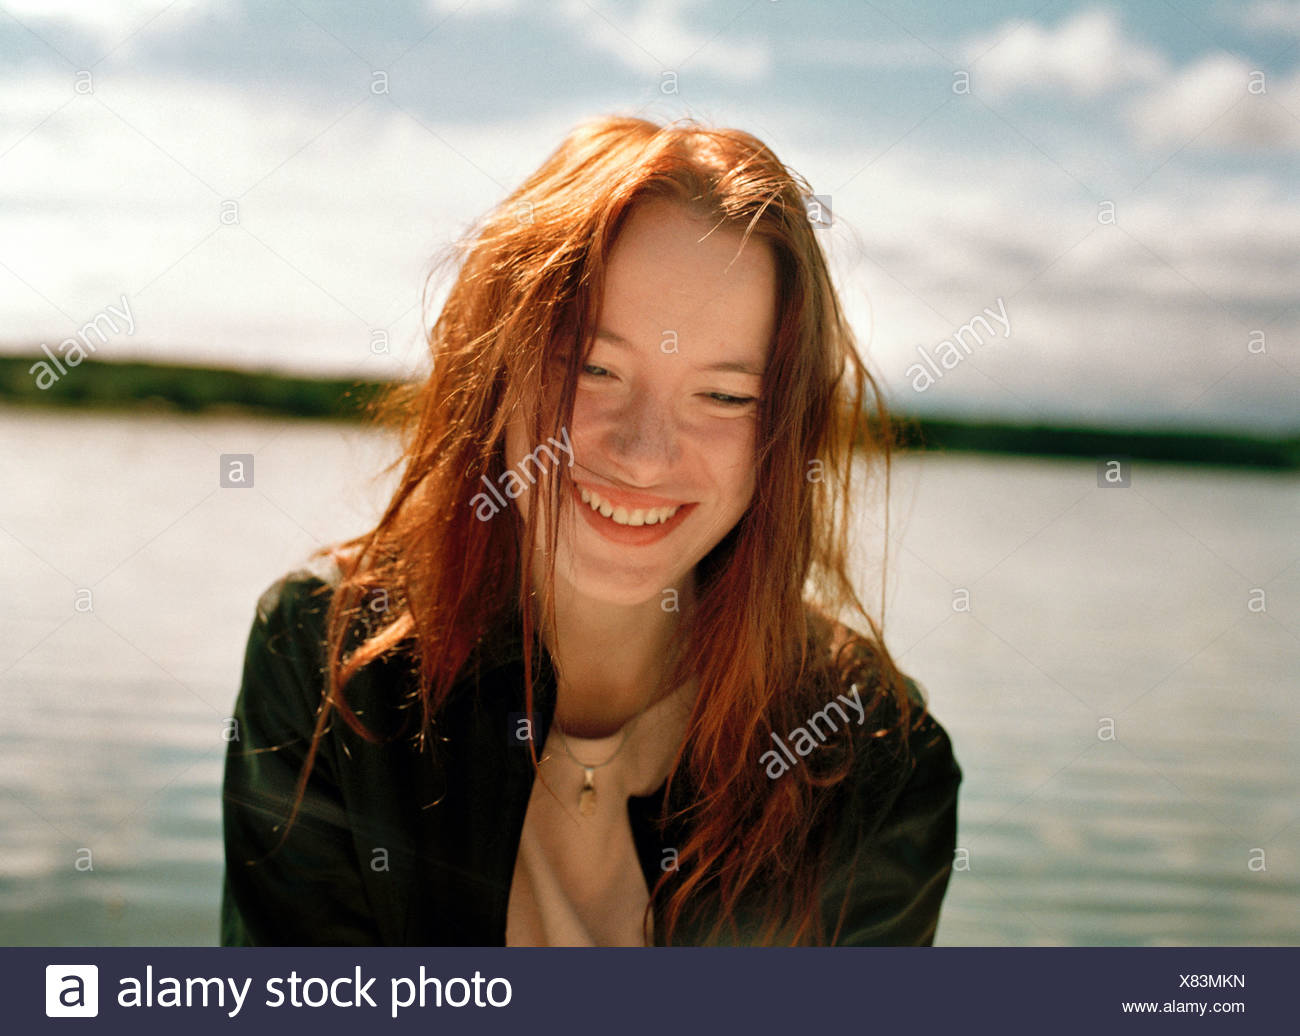 Close up of a young woman smiling near a lake Finland - Stock Image